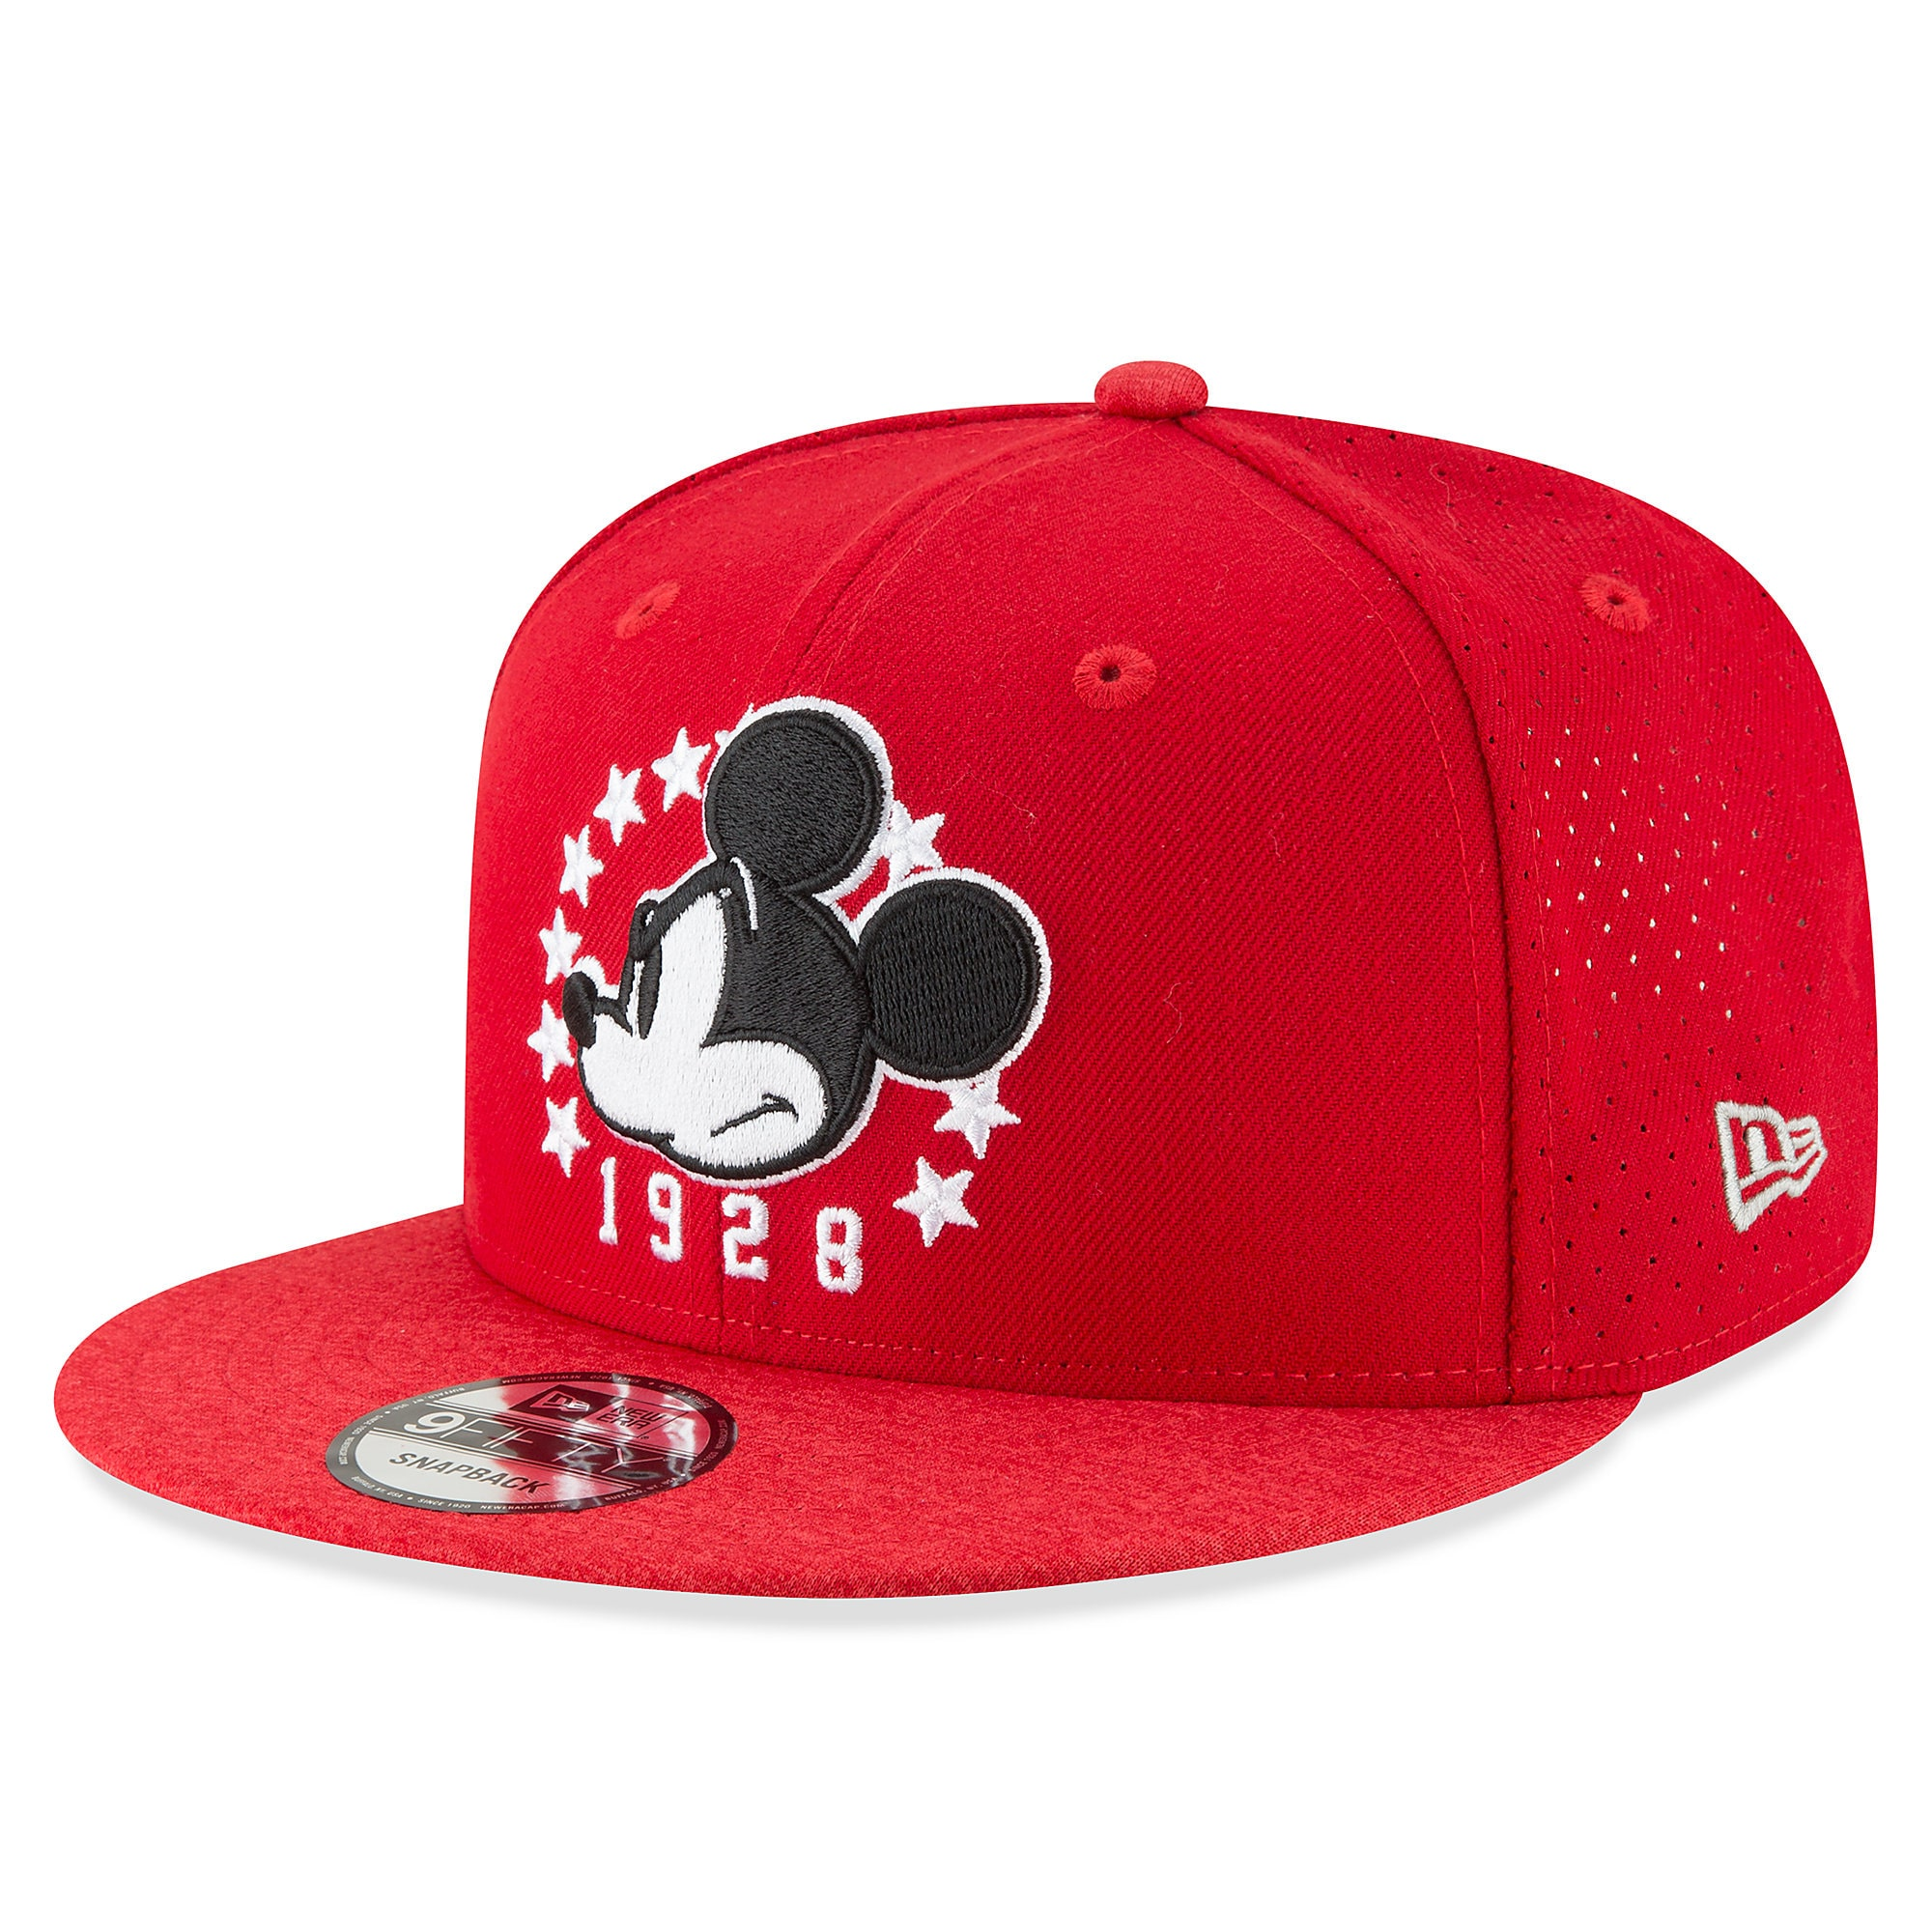 Mickey Mouse Baseball Cap for Adults by New Era